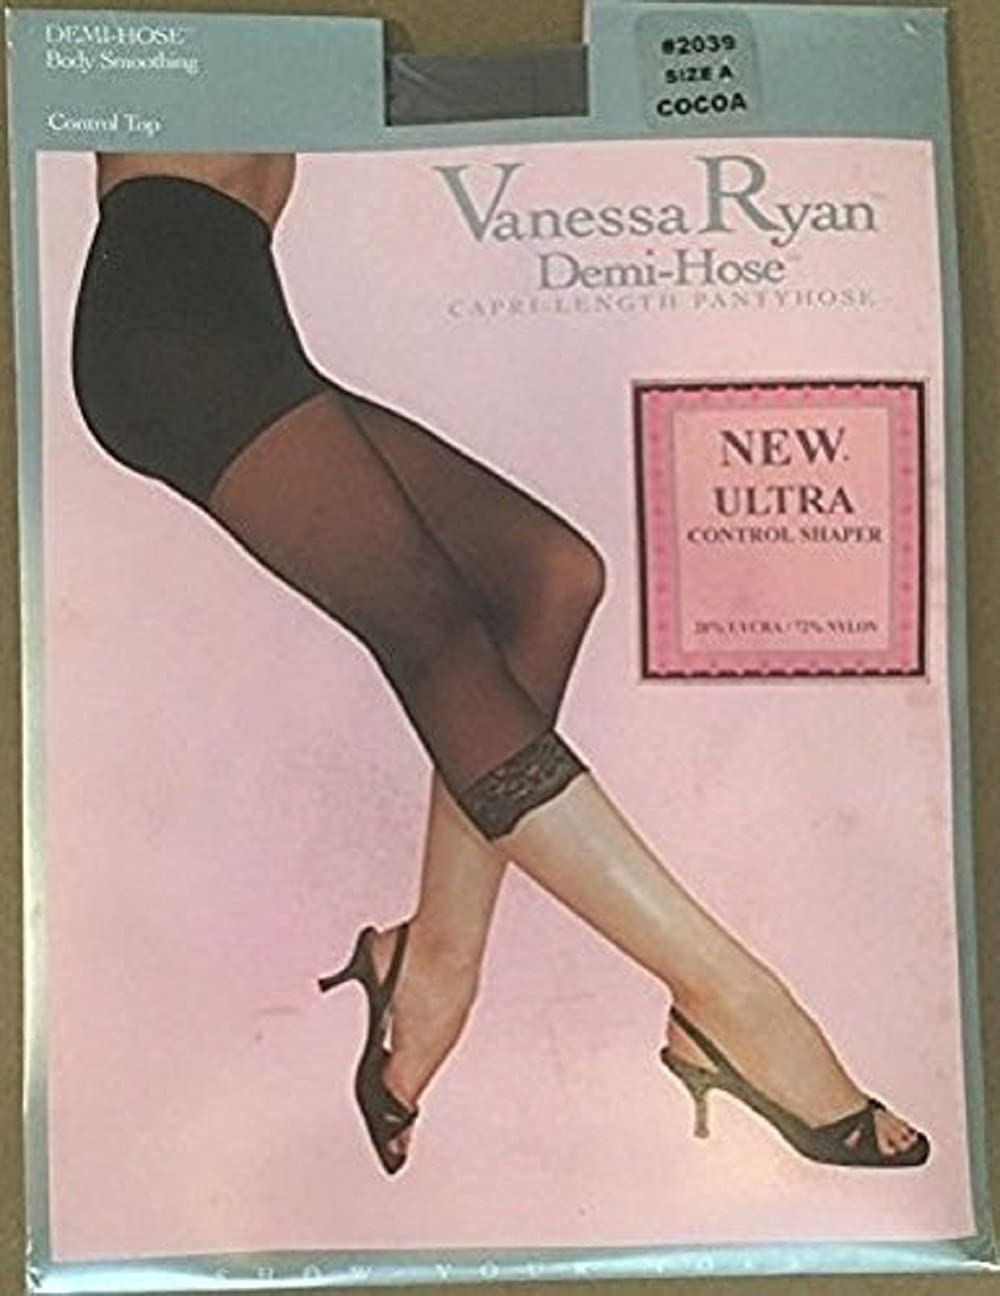 Vanessa Ryan Demi-Hose, Capri-length Pantyhose, New Ultra Control Shaper, Size A Weight 100-150 lbs, Height 4-9 to 5-4), 2039, Nude